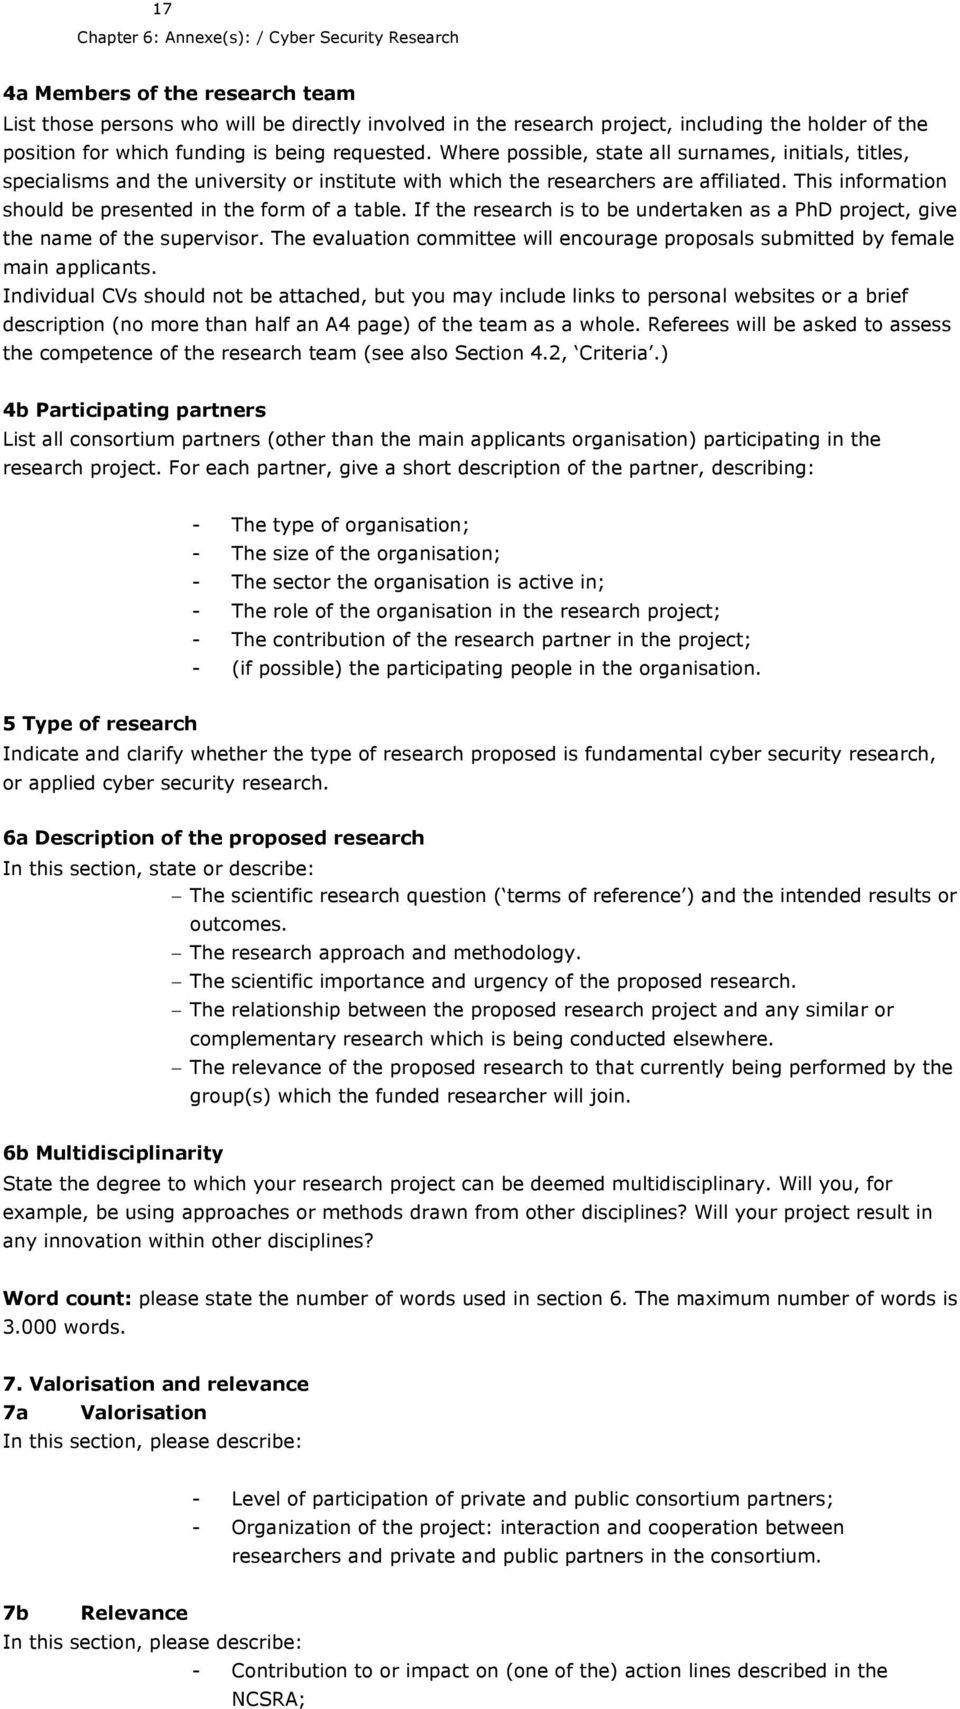 This information should be presented in the form of a table. If the research is to be undertaken as a PhD project, give the name of the supervisor.